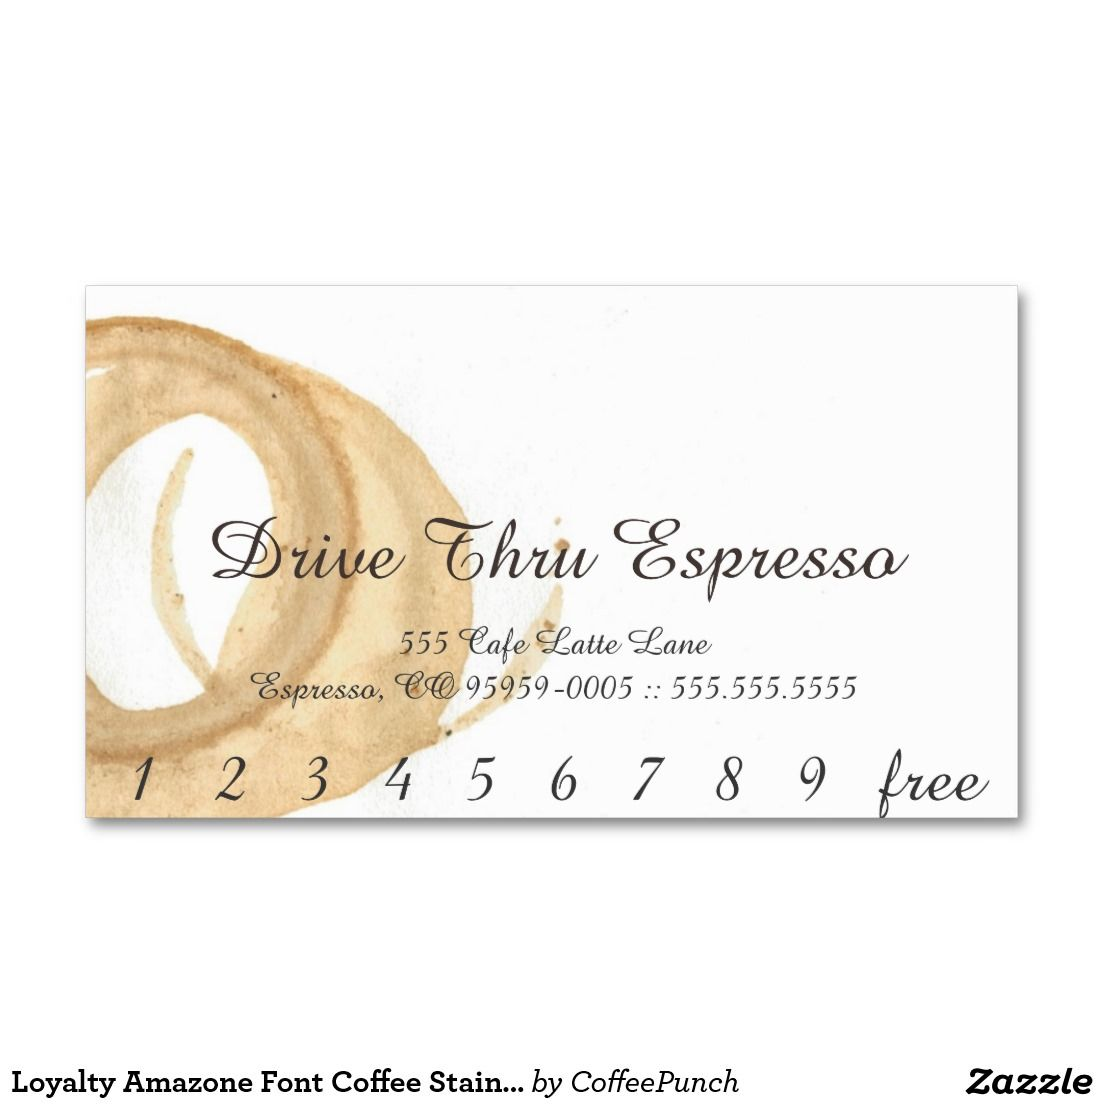 Loyalty amazone font coffee stain punchcard business card business loyalty amazone font coffee stain punchcard business card colourmoves